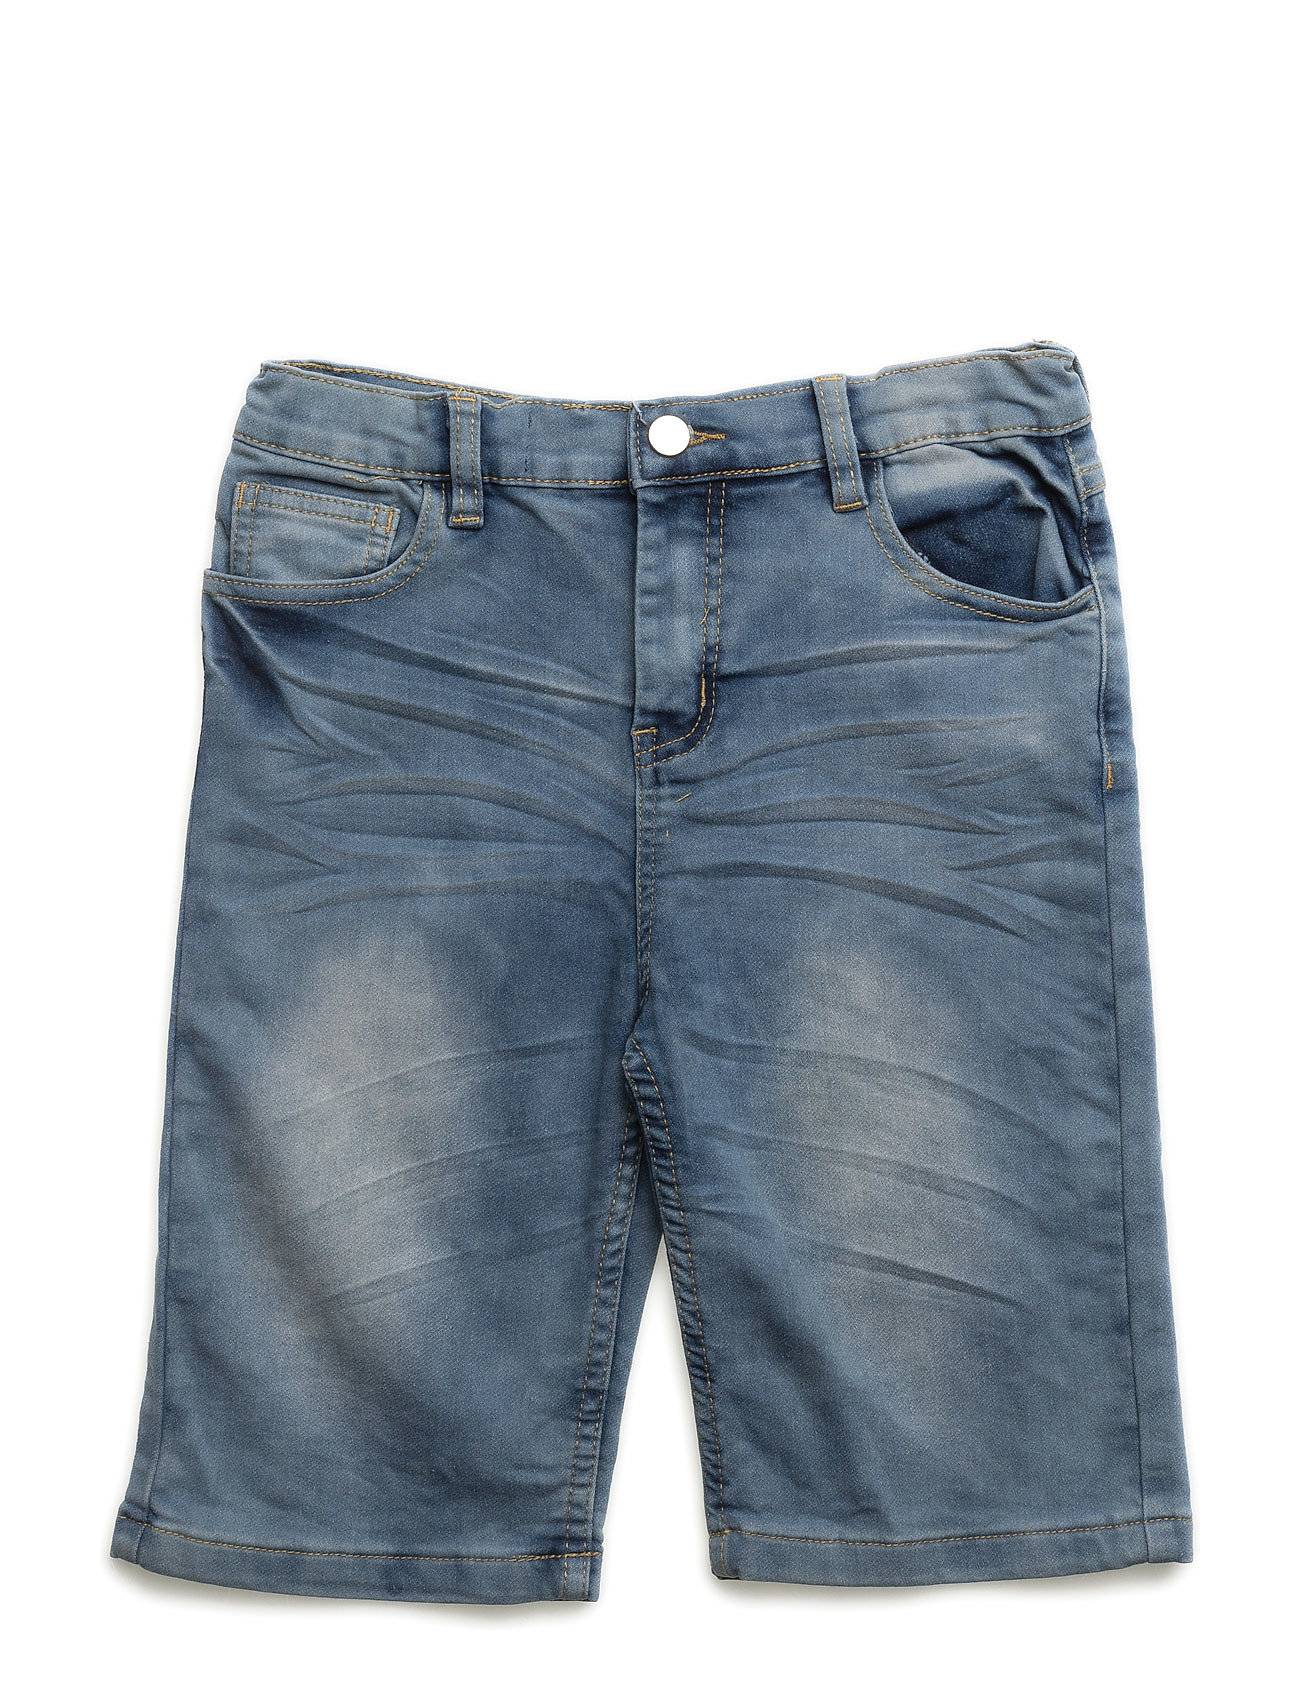 NOVA STAR Shorts Soft Denim 31